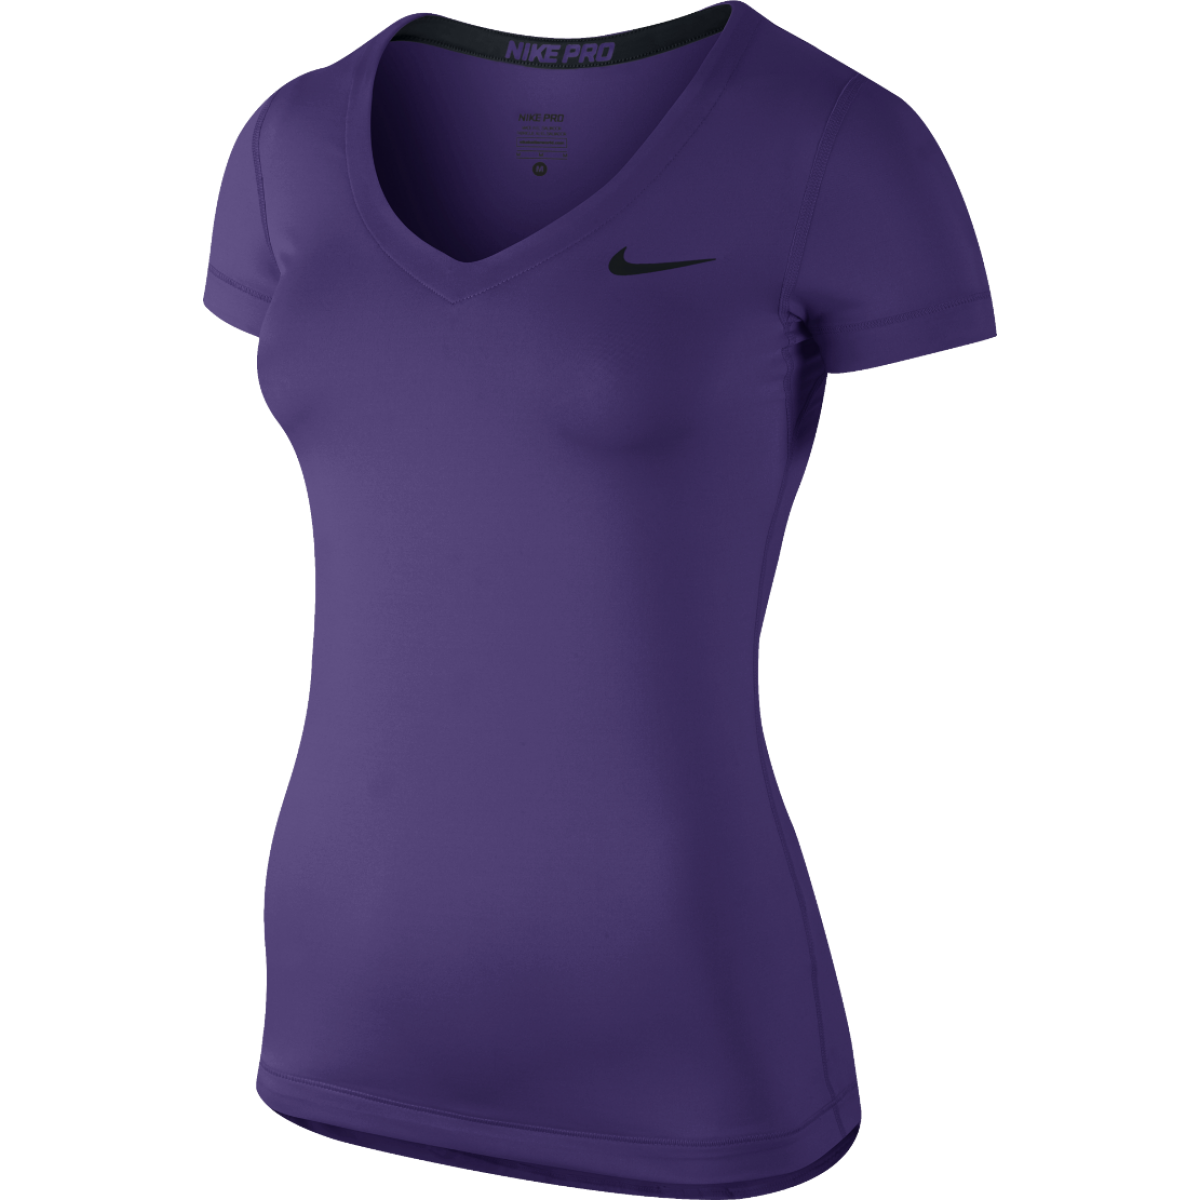 Nike pro training top Purple Nike pro shirt - perfect to workout in or just  to look cute in ?? Nike Tops Muscle Tees